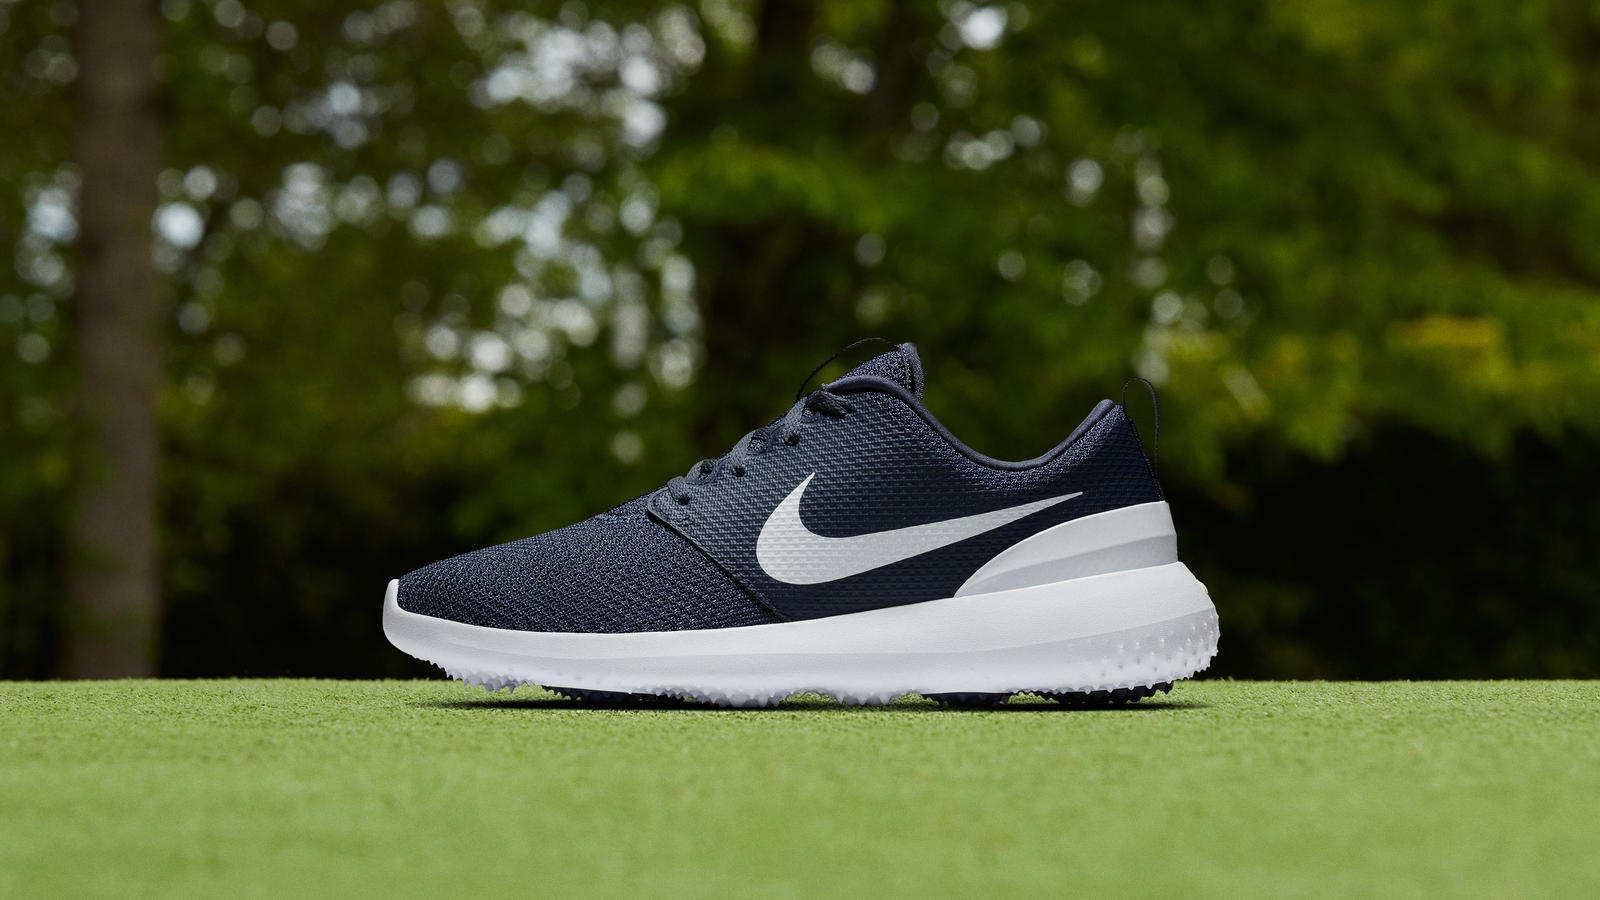 brand new 6314e afb09 Nike Roshe G Golf Shoe 0